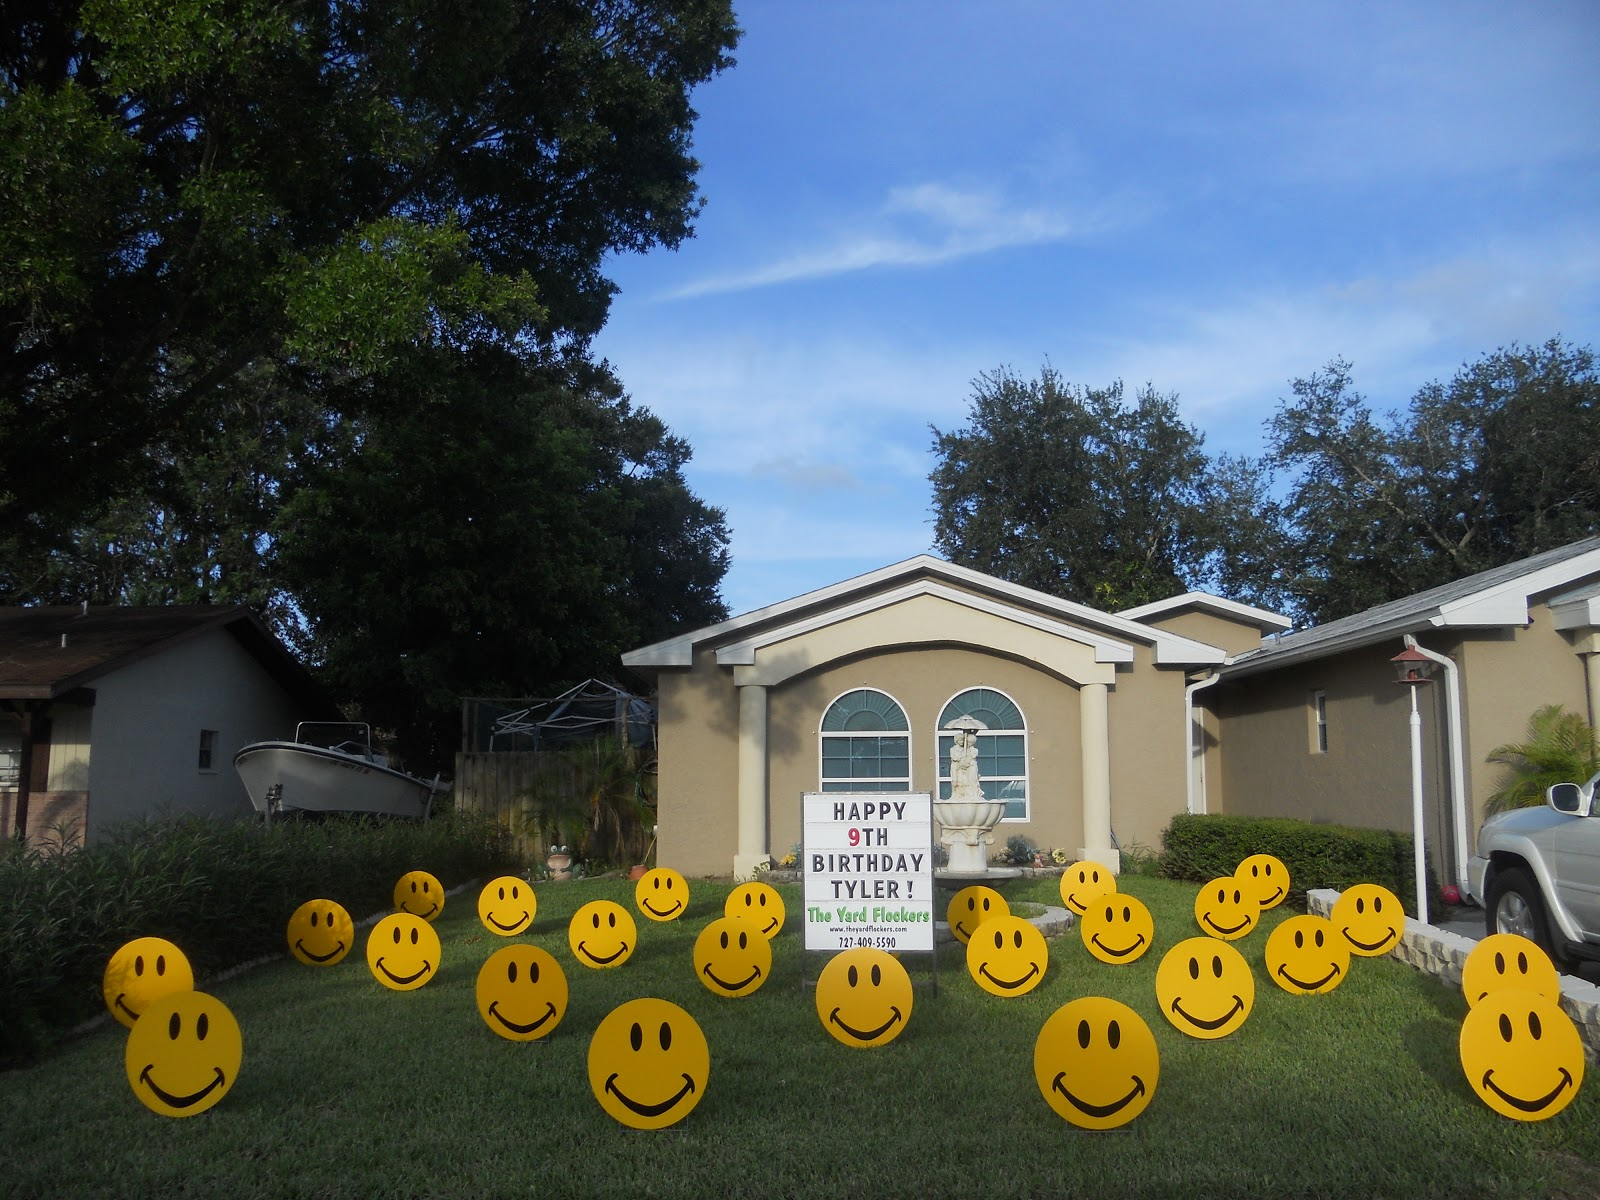 The yard flockers pinellas county fla 727 409 5590 www happy face lawn greetings yard cards lawn displays lawn pranks 727 409 5590 m4hsunfo